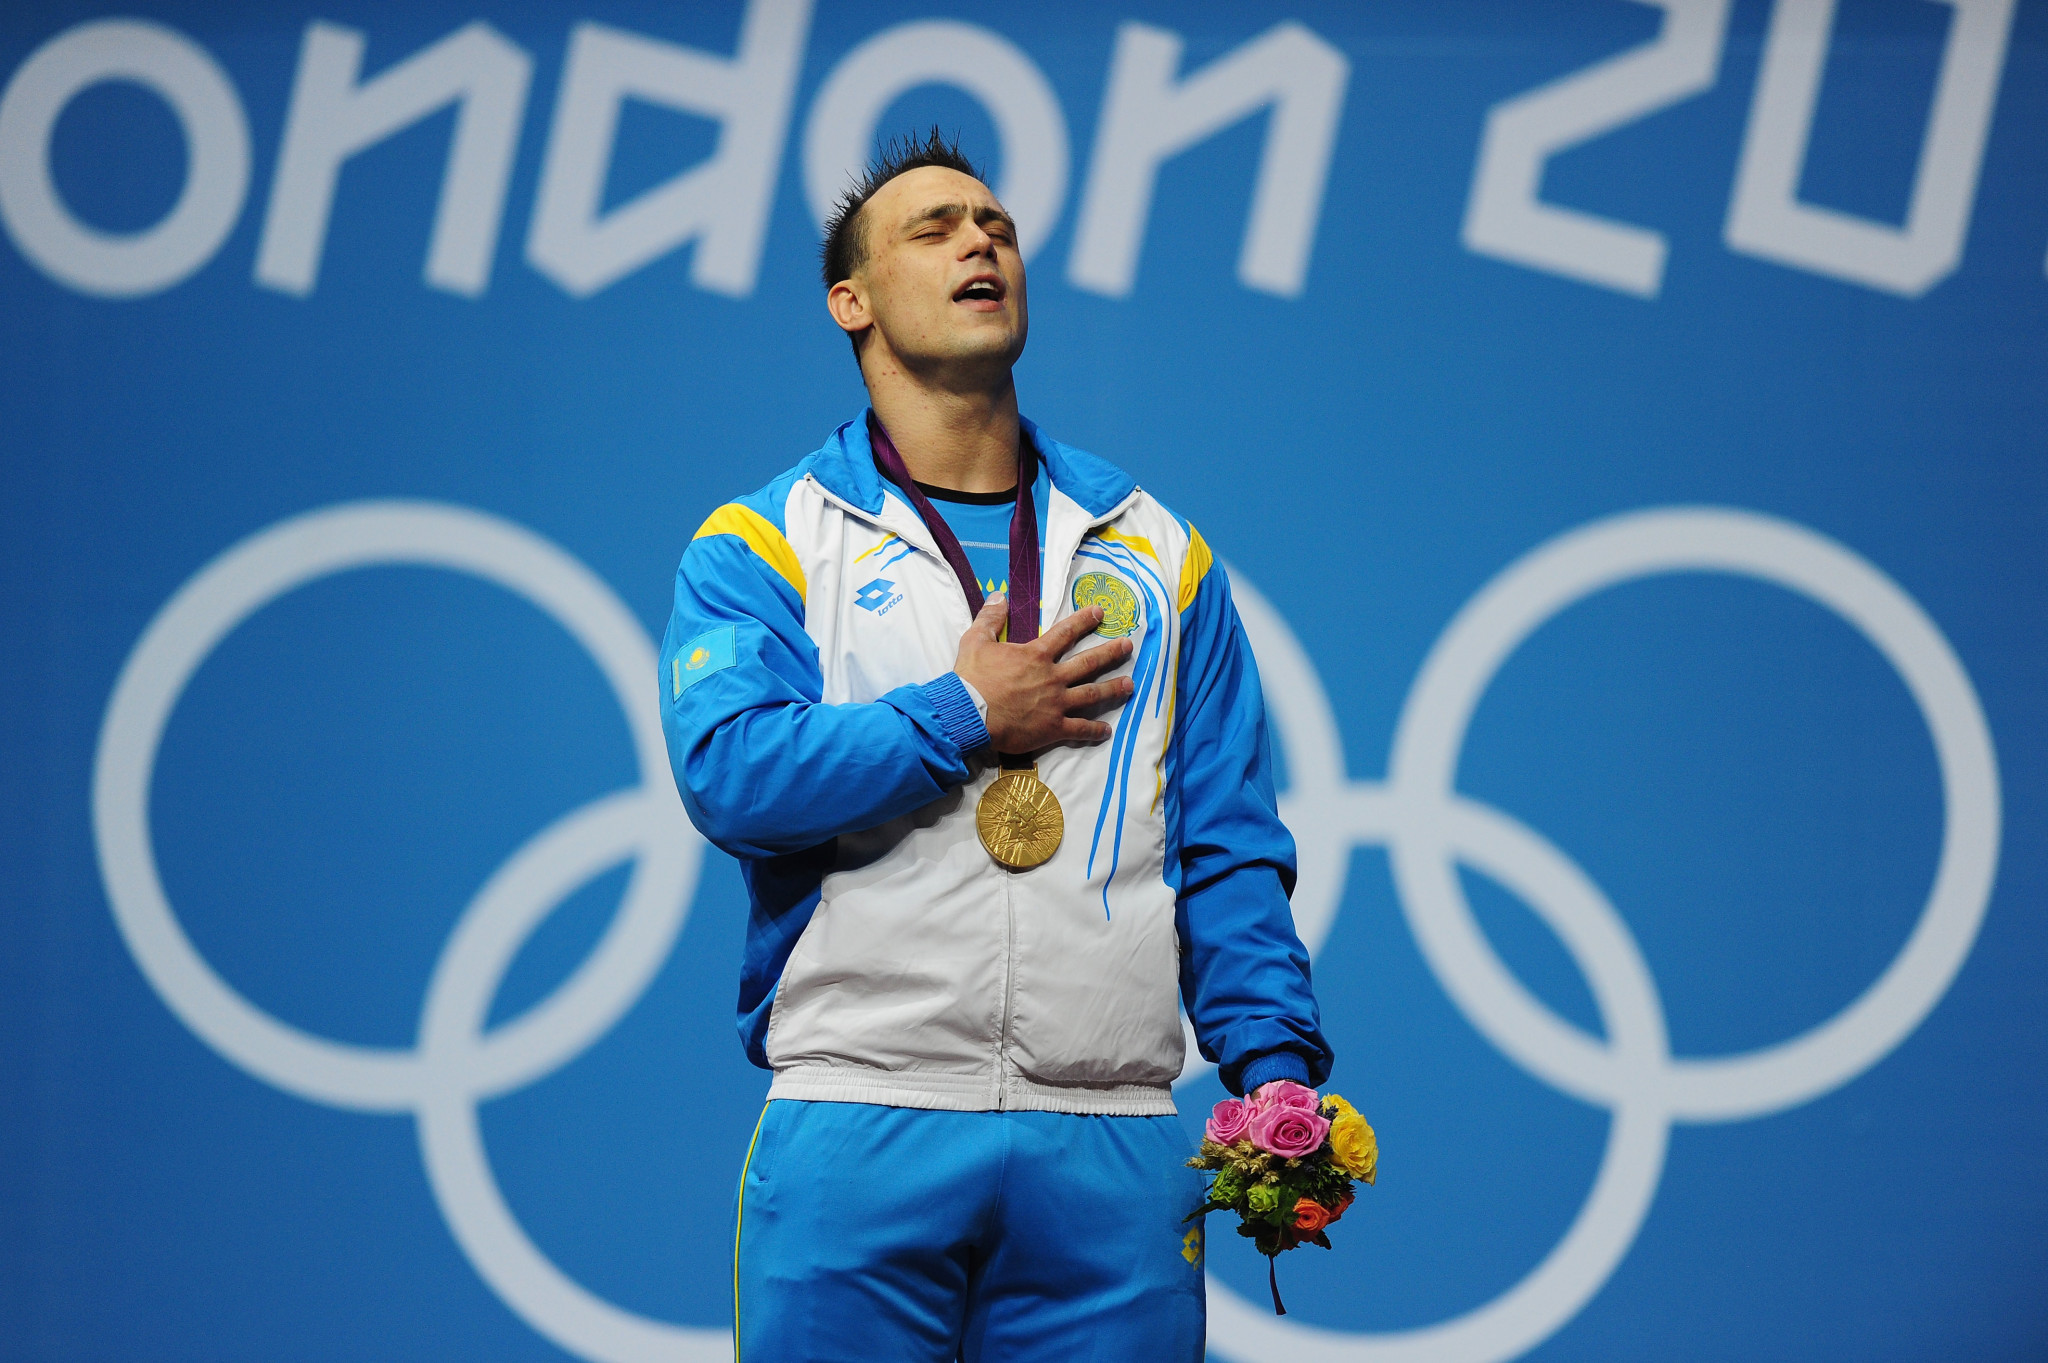 Controversial figure Ilya Ilyin has returned to weightlifting action ©Getty Images